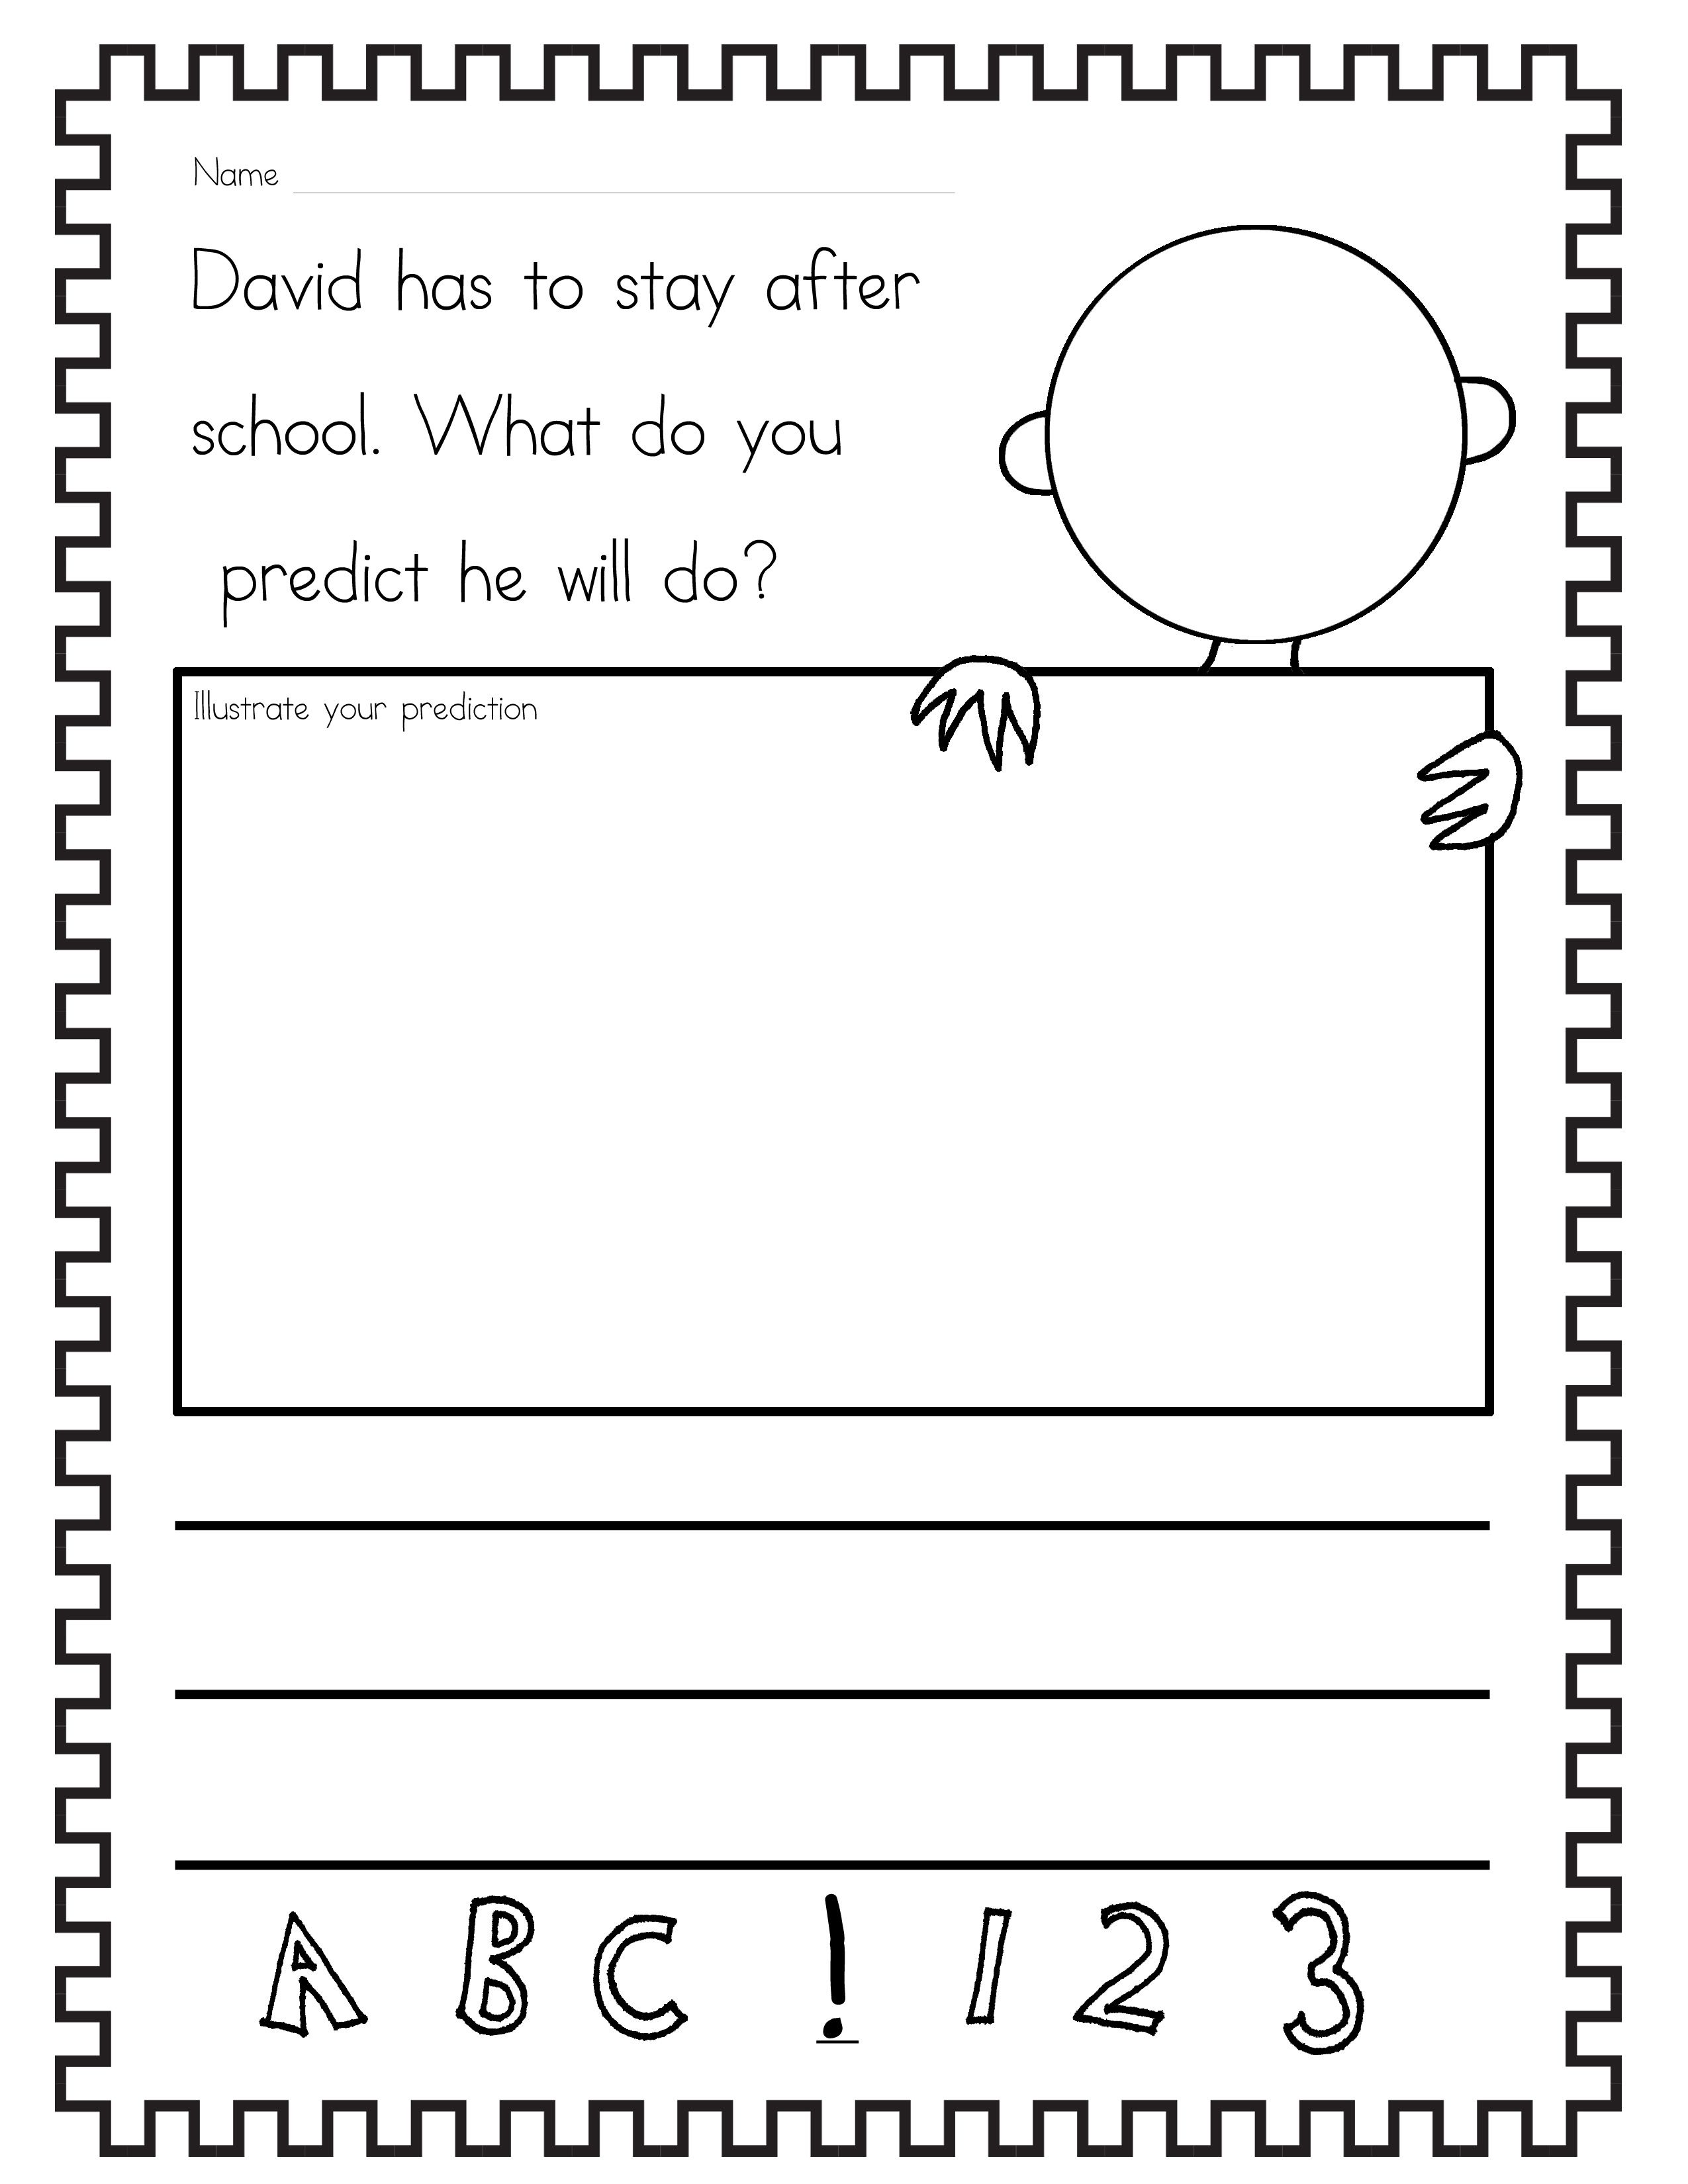 Free David Goes To School Prediction Worksheet I Started Off By Just Reading David Goes To